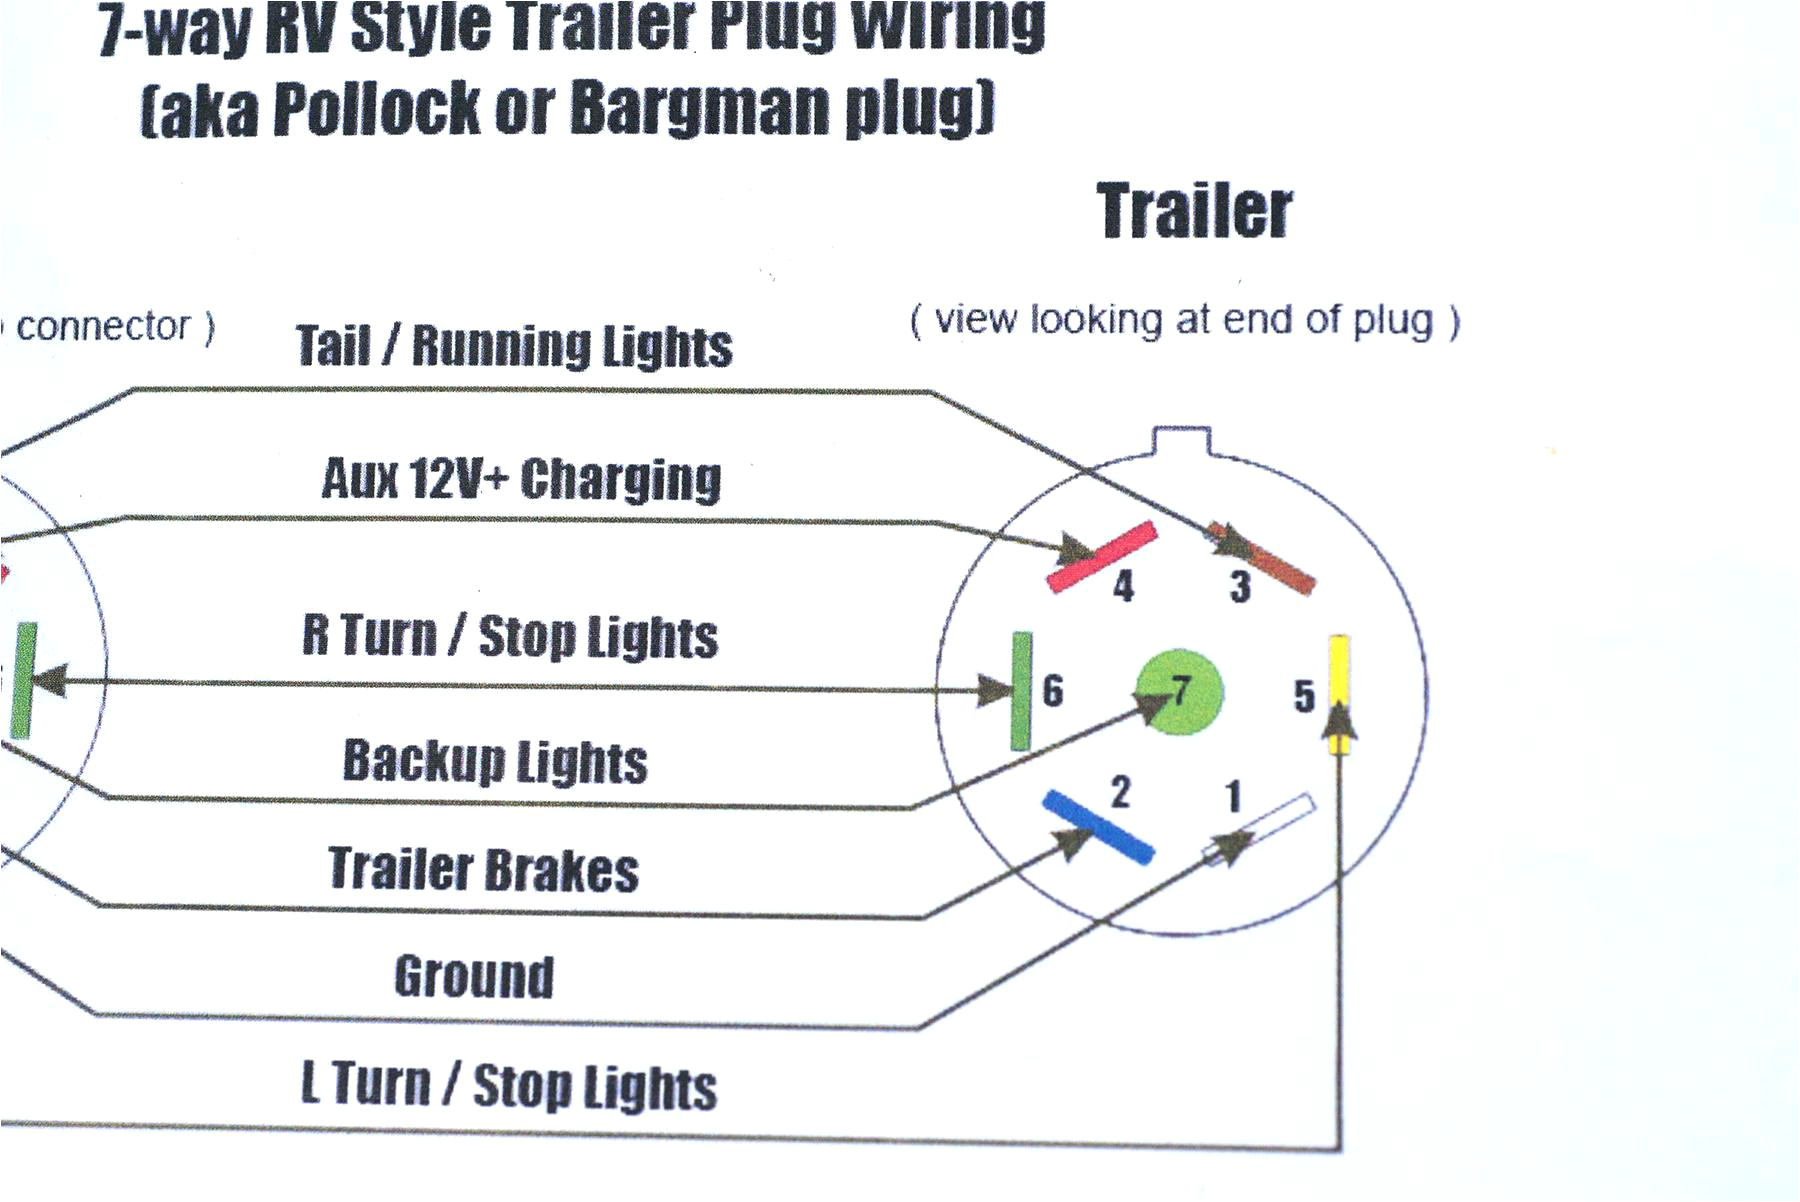 trailer wiring harness free download wiring diagram files e250 trailer wire harness diagram get free image about wiring